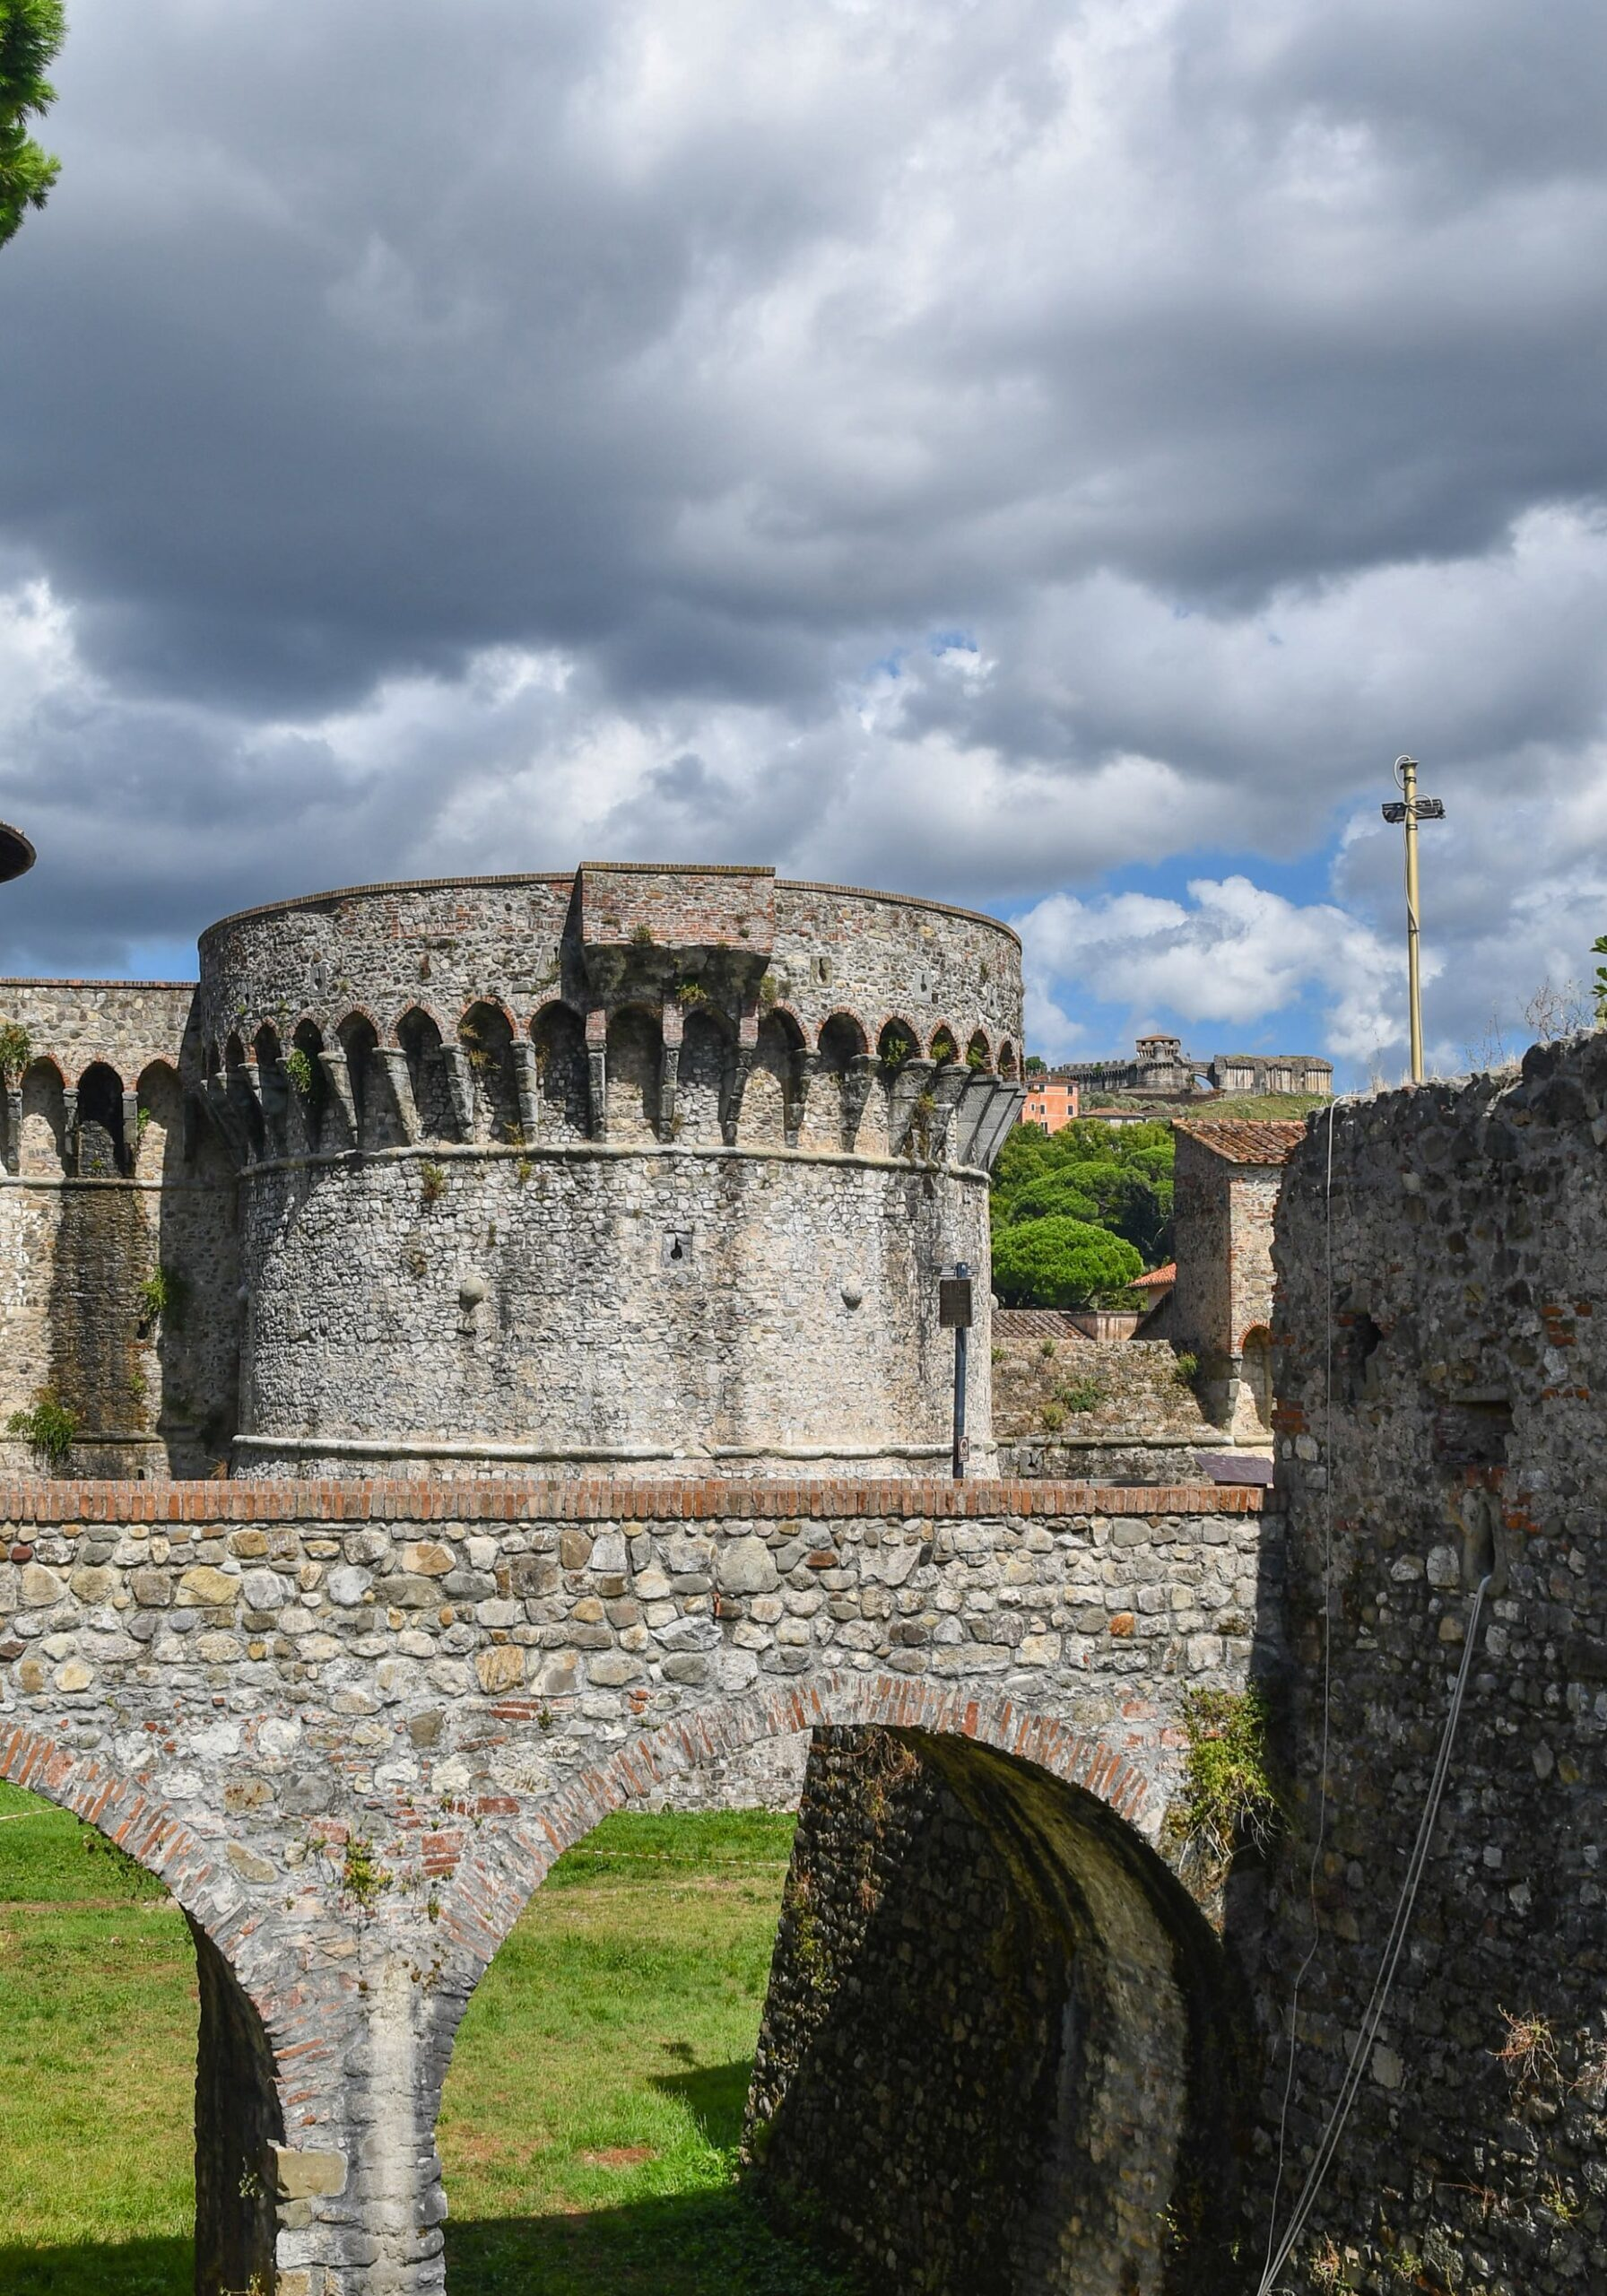 Sarzana, La Spezia | Italy - August 30 2020: View of the fortress Cittadella of Sarzana (13-15th centuries),  today used as a venue for cultural events and exhibitions